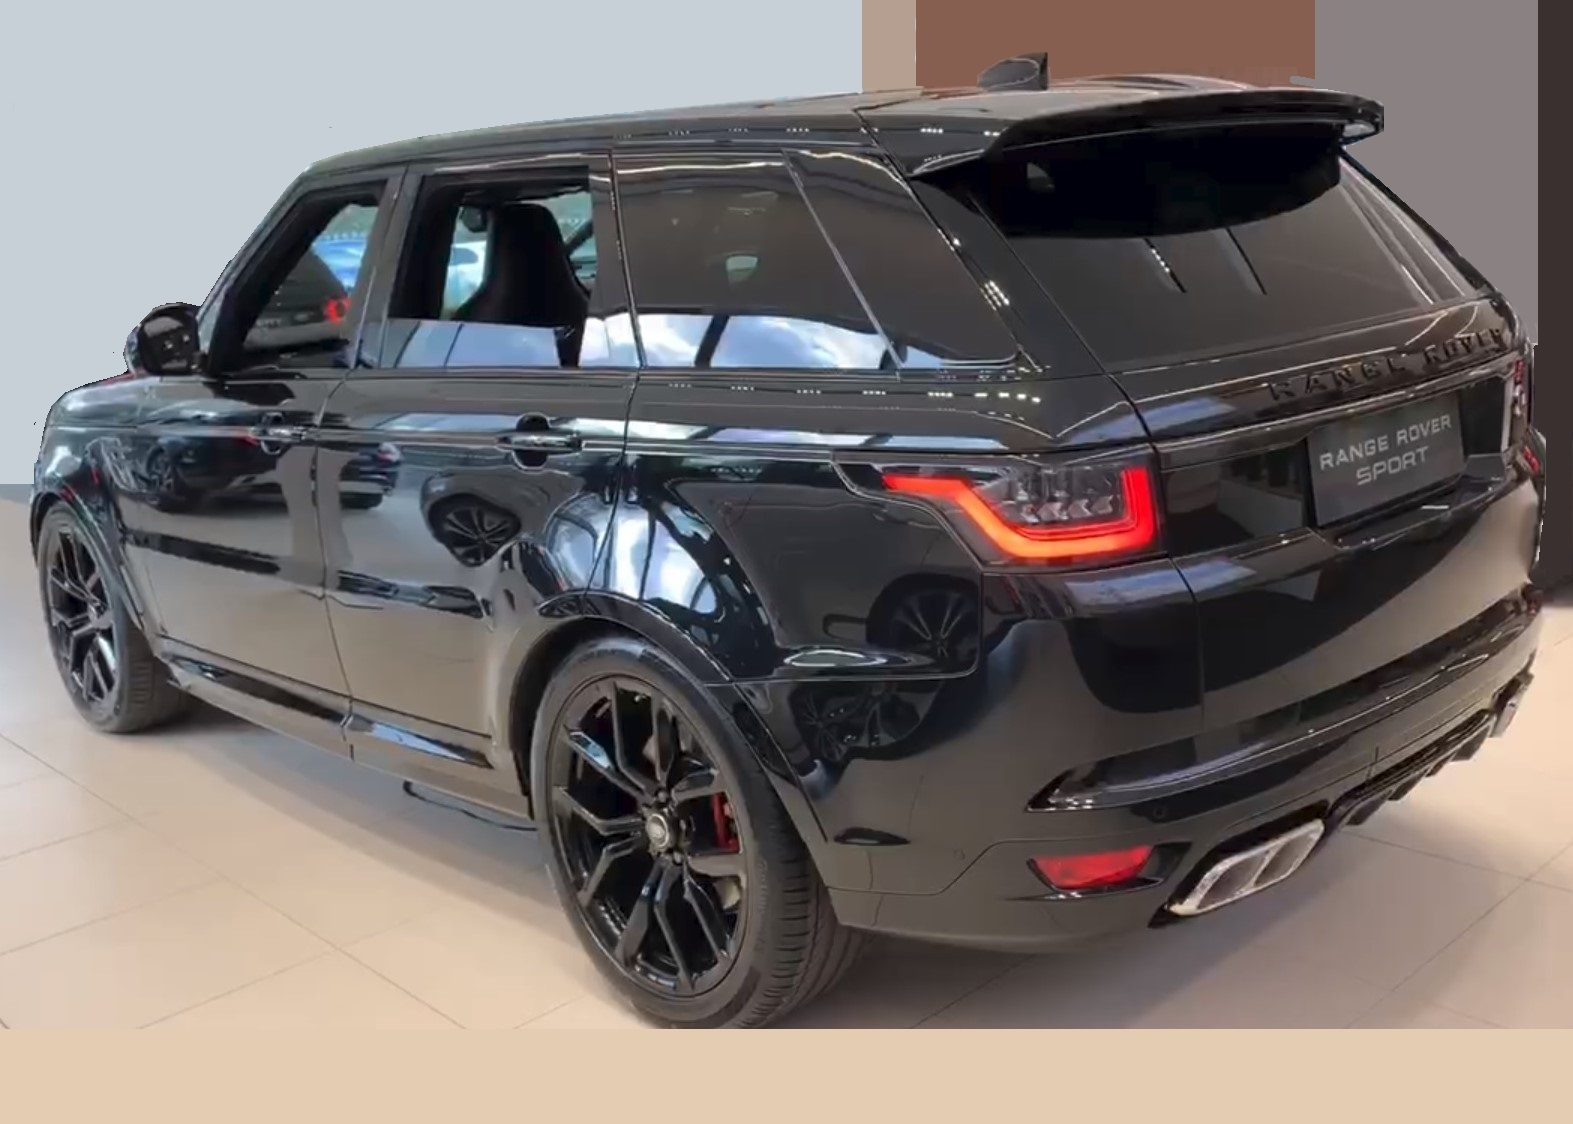 RHD-UK-MY2019 SVR-Range-Rover-Sport Santorini-Black Prestige-Vehicle-Search-Ltd